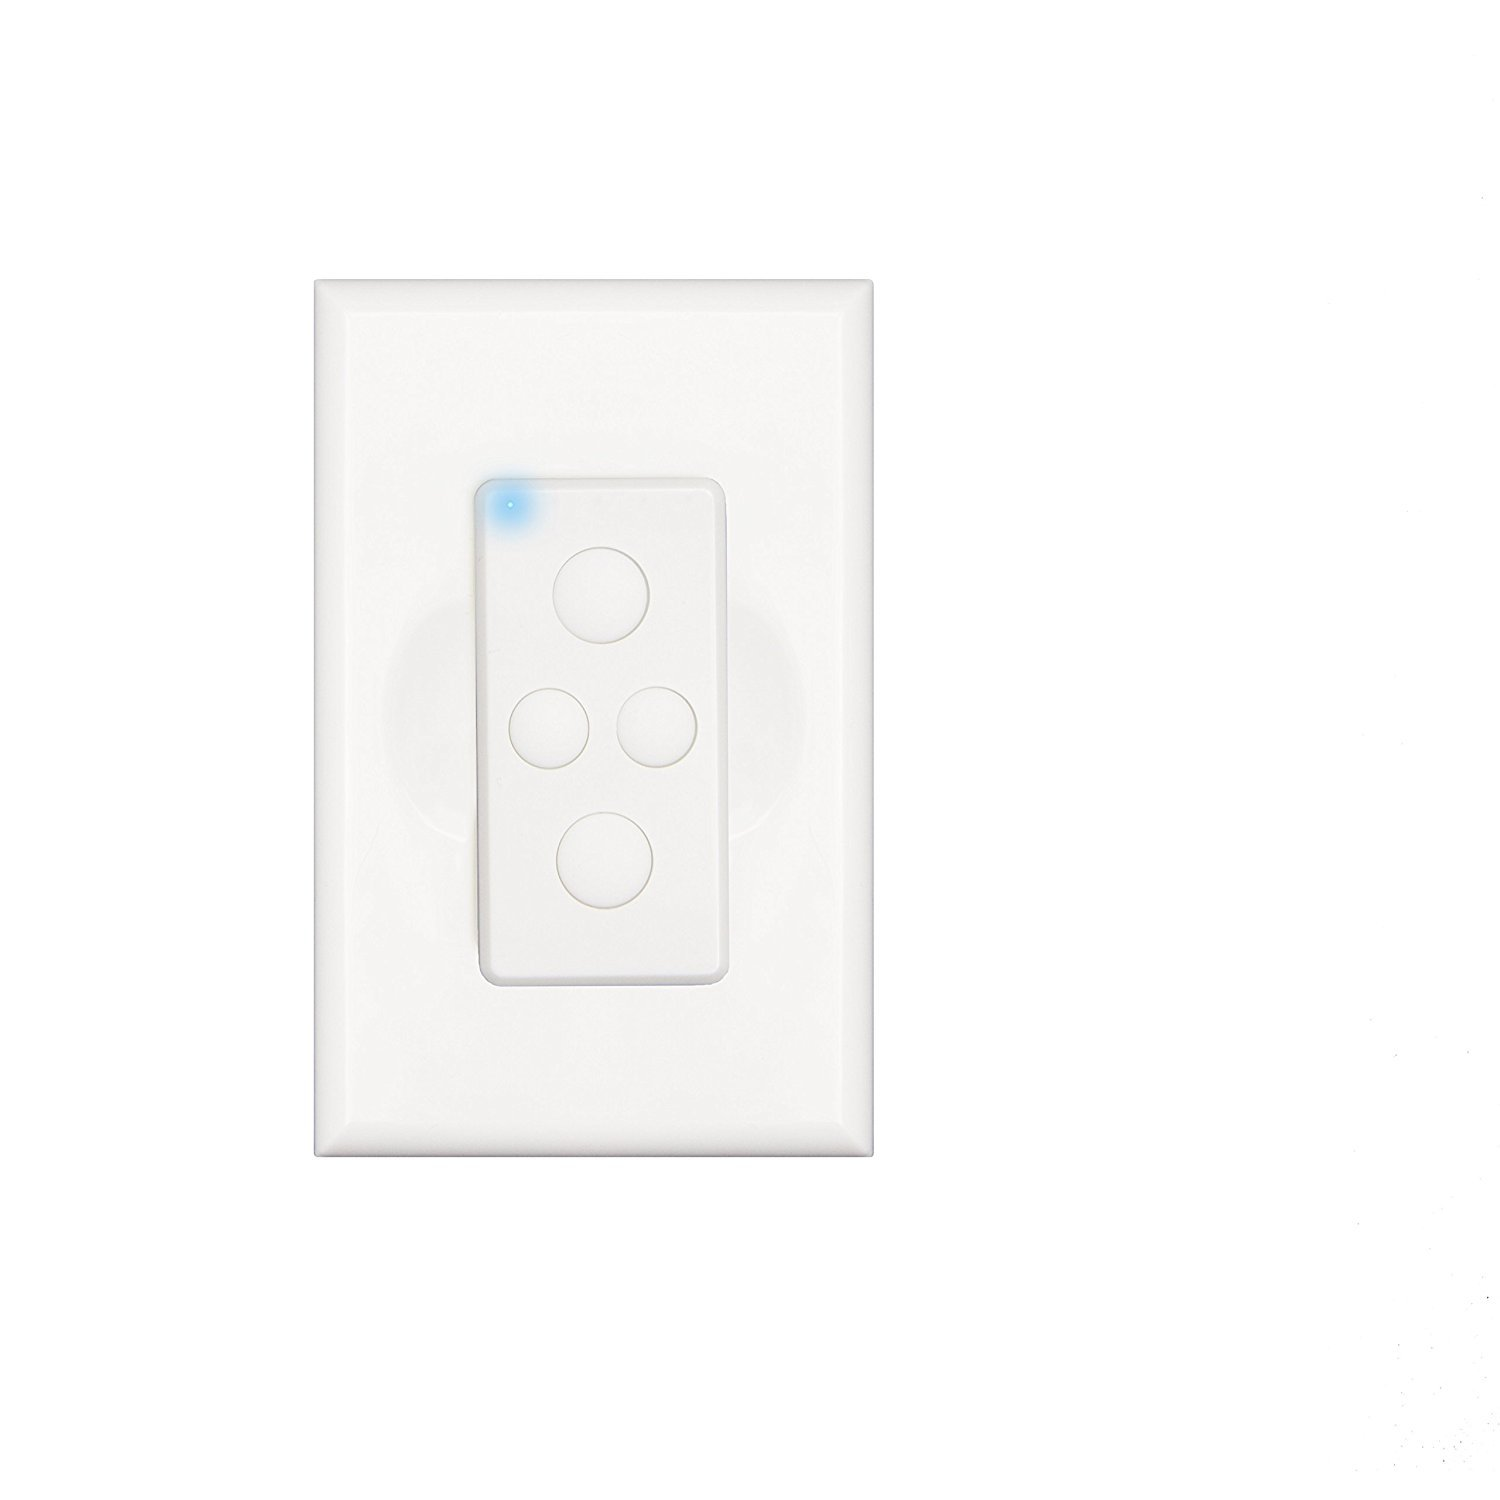 MySmartBlinds Smart Switch | Control your smart blinds with a simple Bluetooth remote | For use with MySmartBlinds Automation Kit